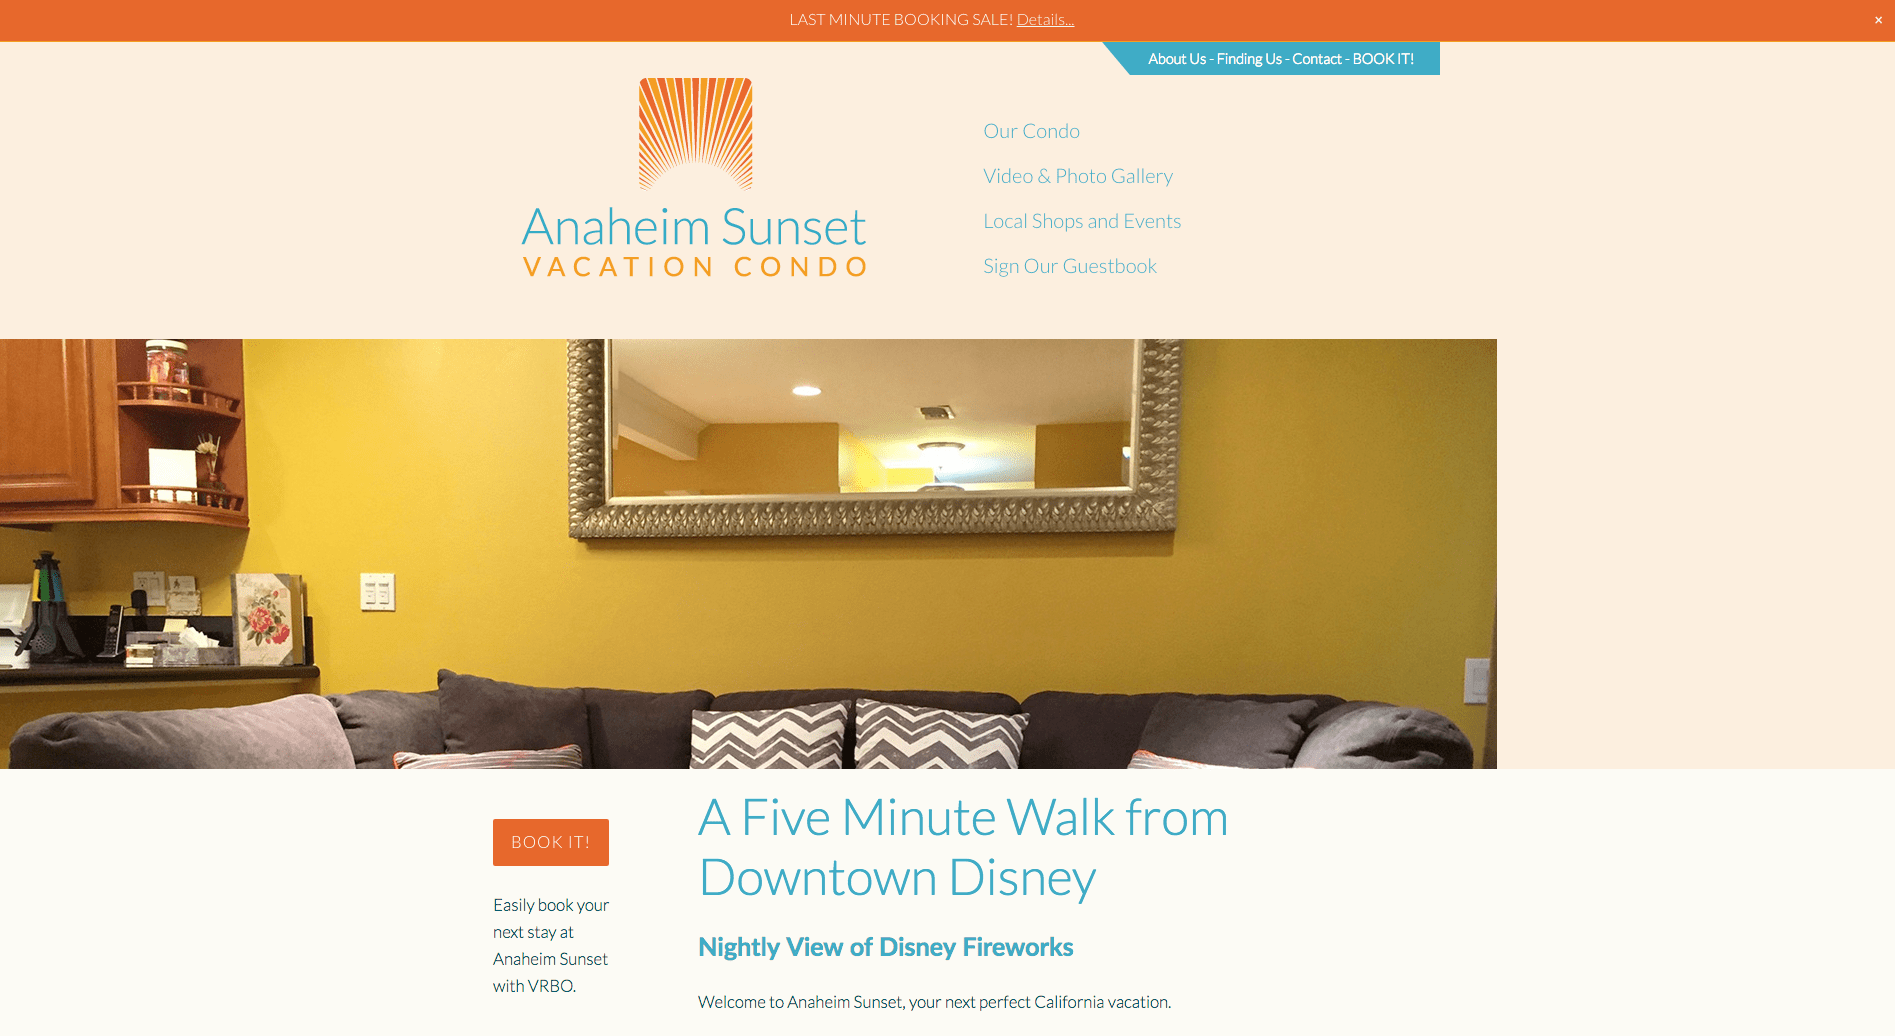 Anaheim Sunset Vacation Condo website, designed by Hoppel Design